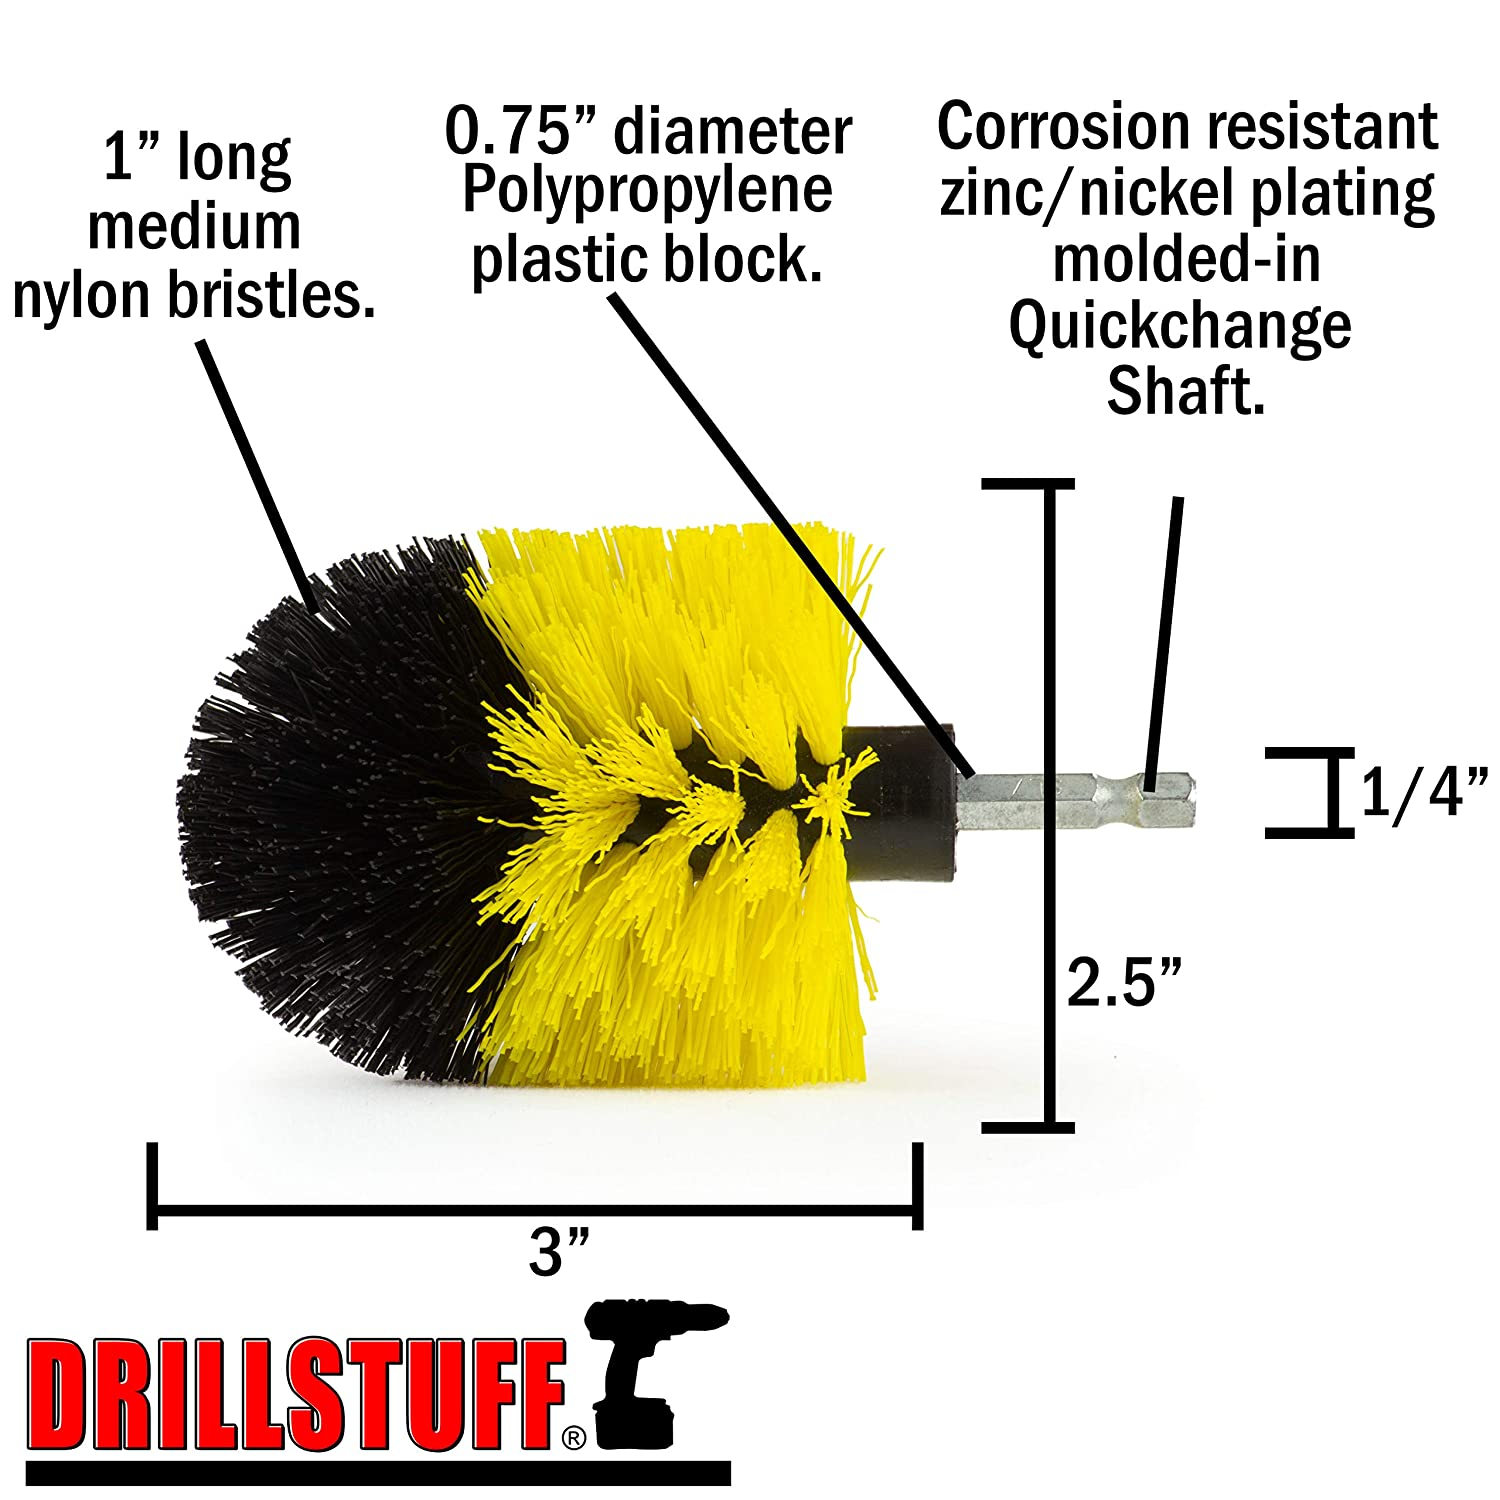 Rust Remover Drillstuff K-O-QC-DS Grill Tools Smokers and Grills Grill Accessories Gas Grill Electric Smoker Grill Cleaner Grease BBQ Accessories Grill Brush BBQ Brush Grill Scraper Drill Brush